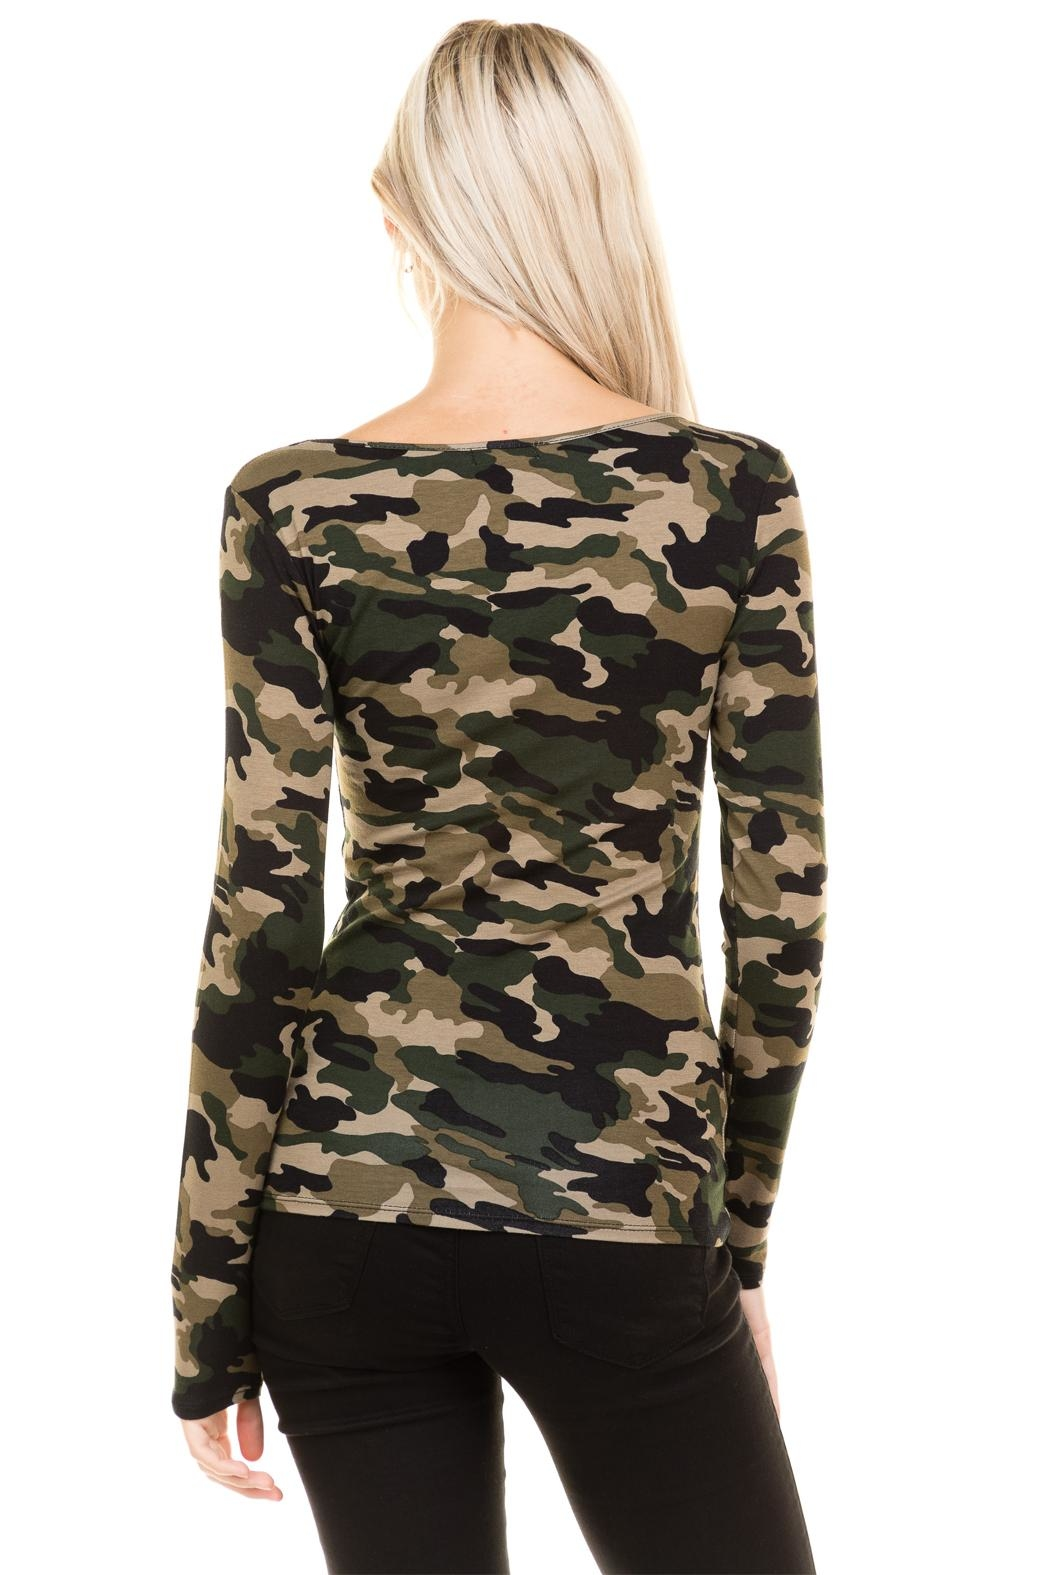 Heart and Hips CrissCross Camouflage Top - Back Cropped Image